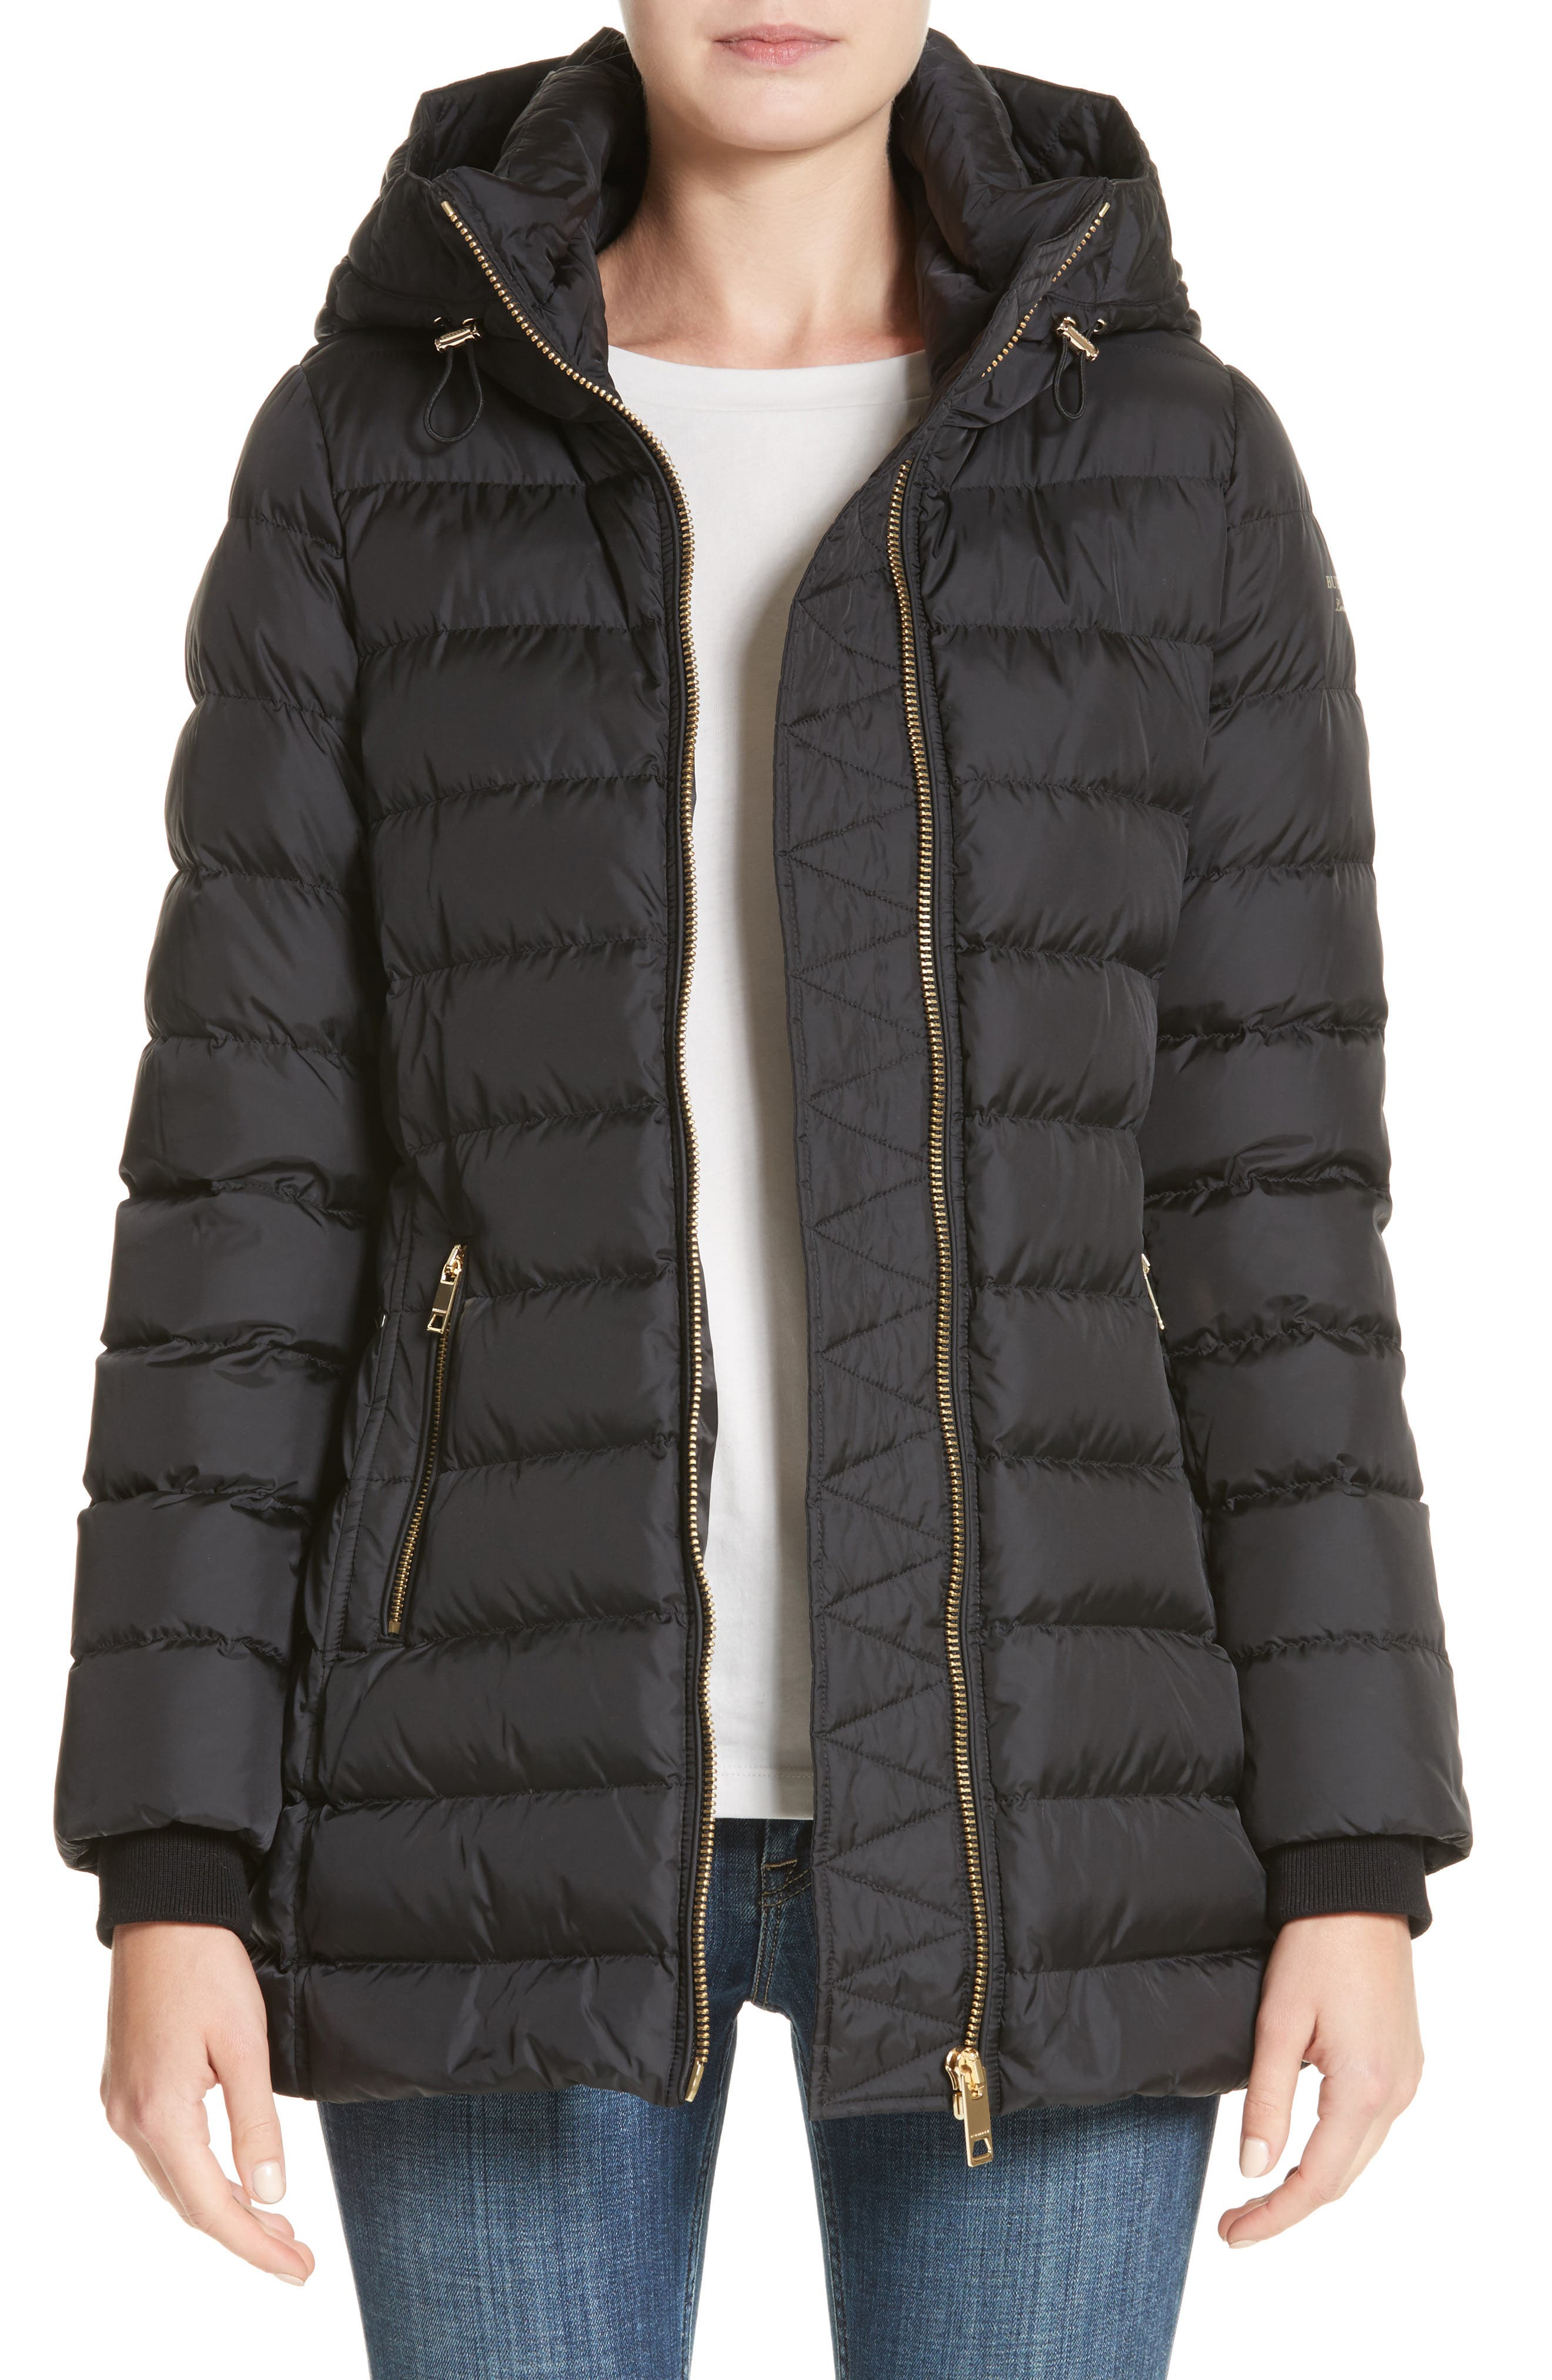 Limefield Hooded Puffer Coat,                         Main,                         color, Black